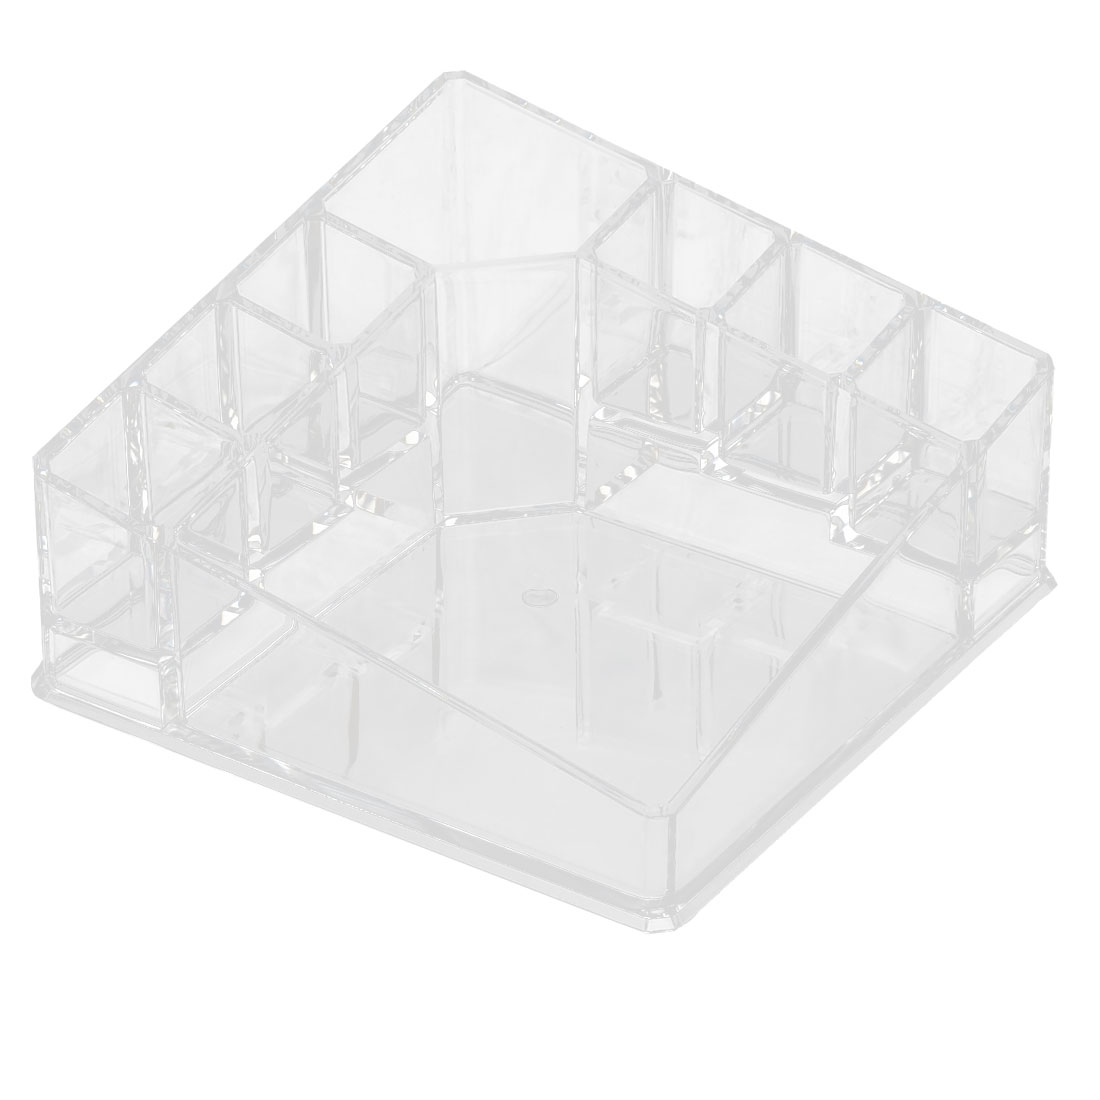 Household Acrylic 8 Slots Jewelry Makeup Storage Box Case Organizer Clear